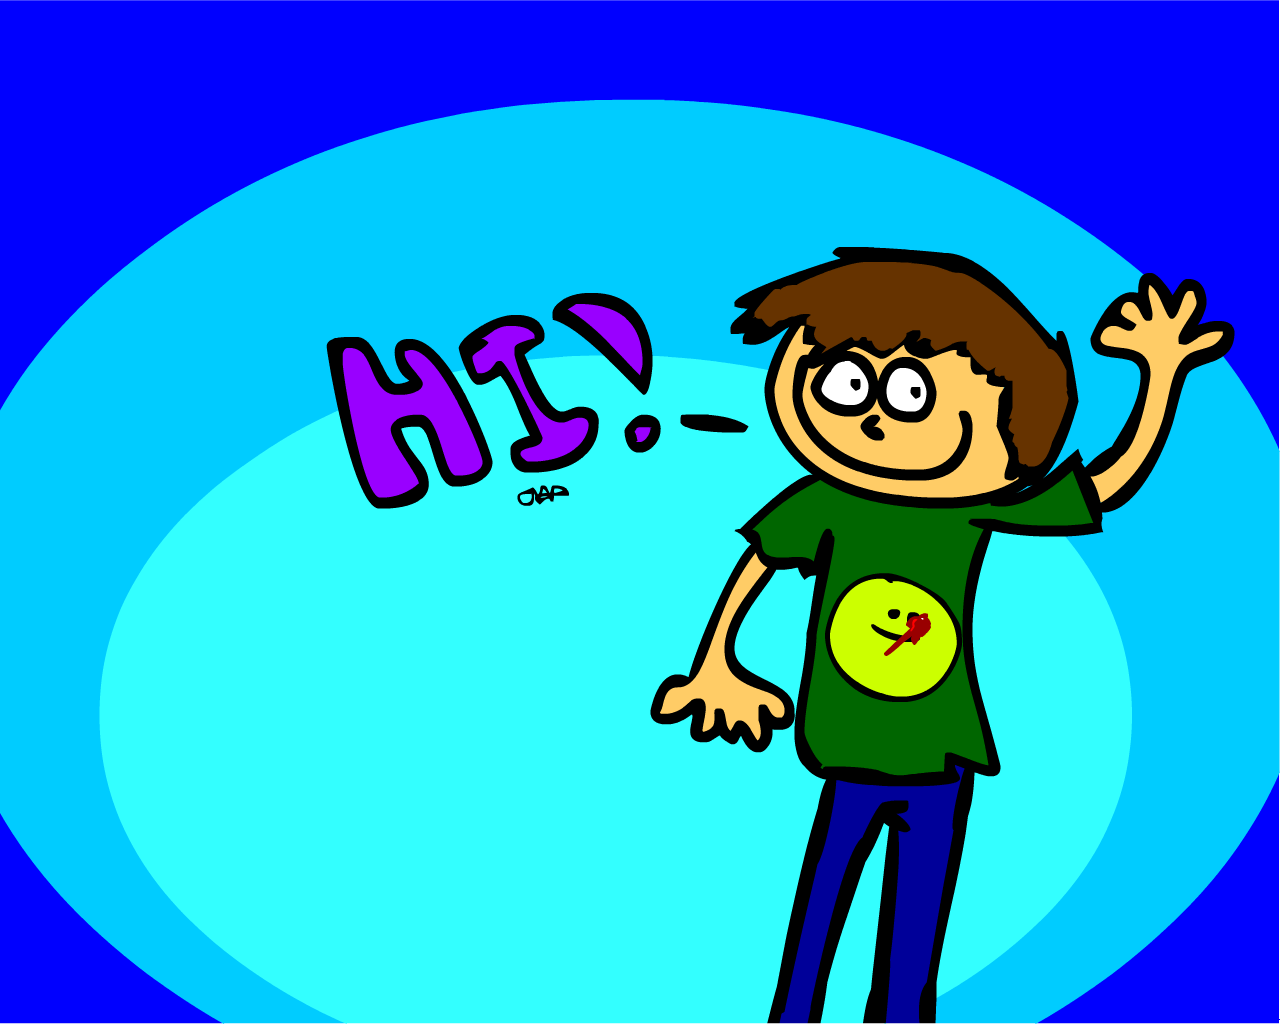 Hi Wallpaper By Renandchi2 On Newgrounds